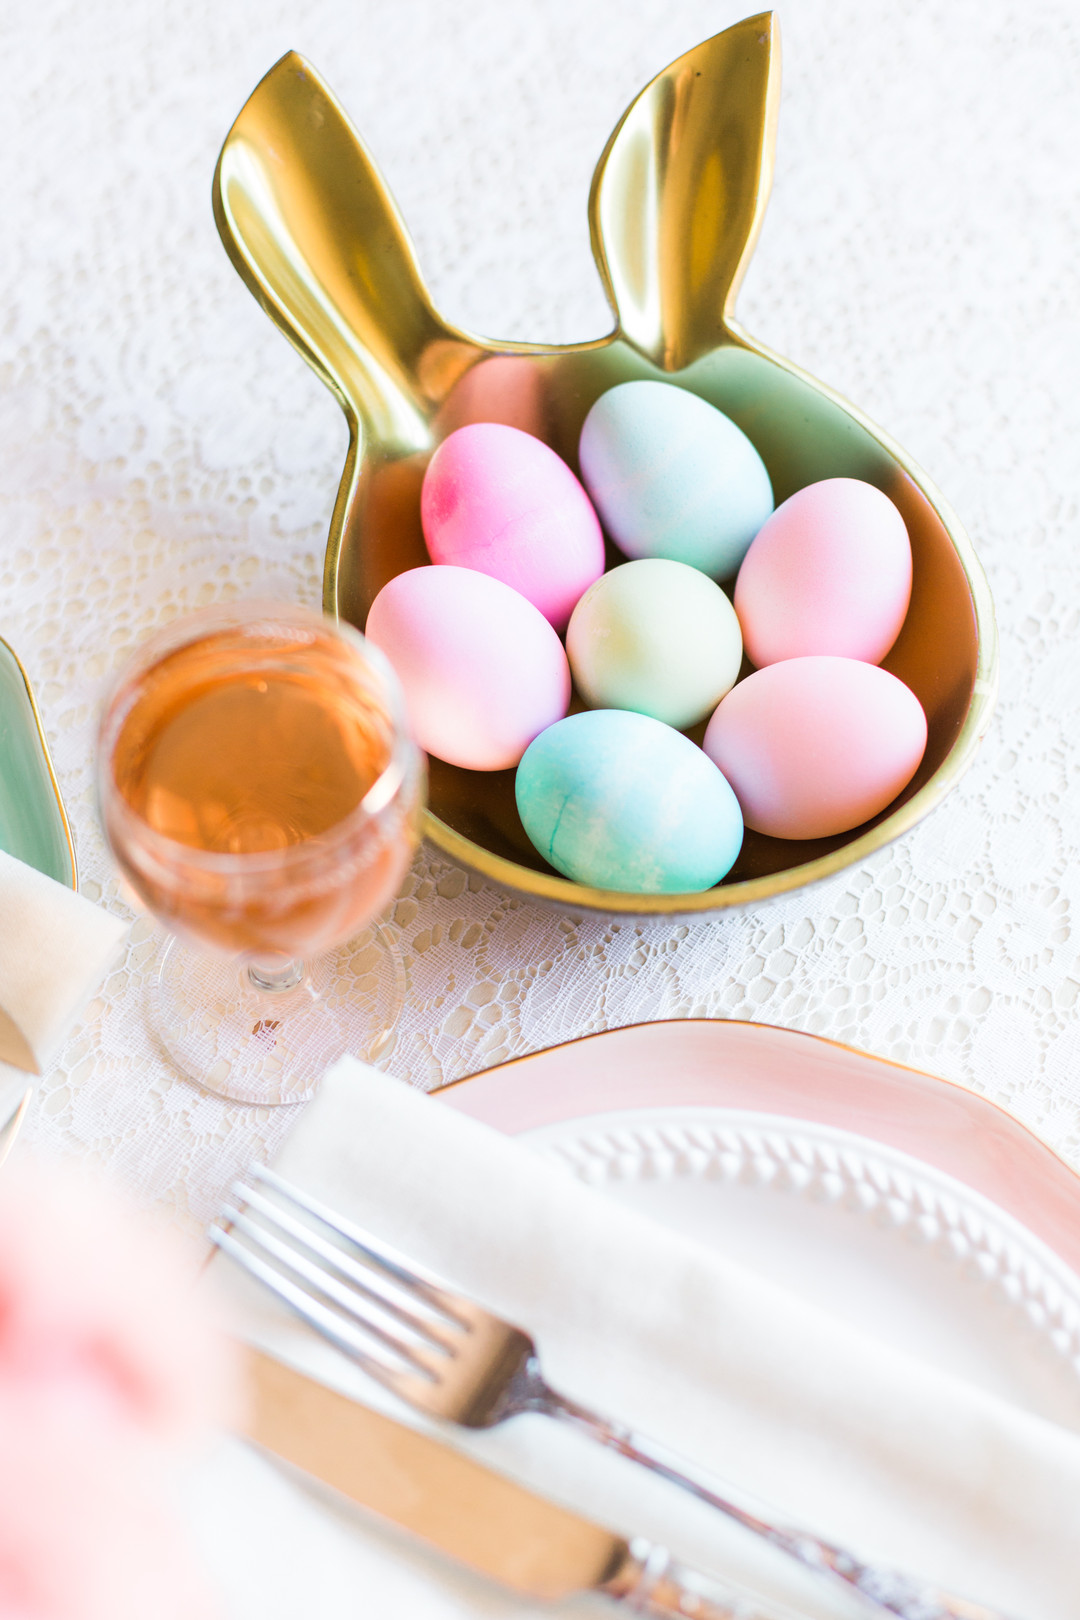 Staal_KristinaStaalPhotography_KristinaStaalPhotographyEasterTablescape201626_big Easy Entertaining: Easter Brunch Inspiration for Two